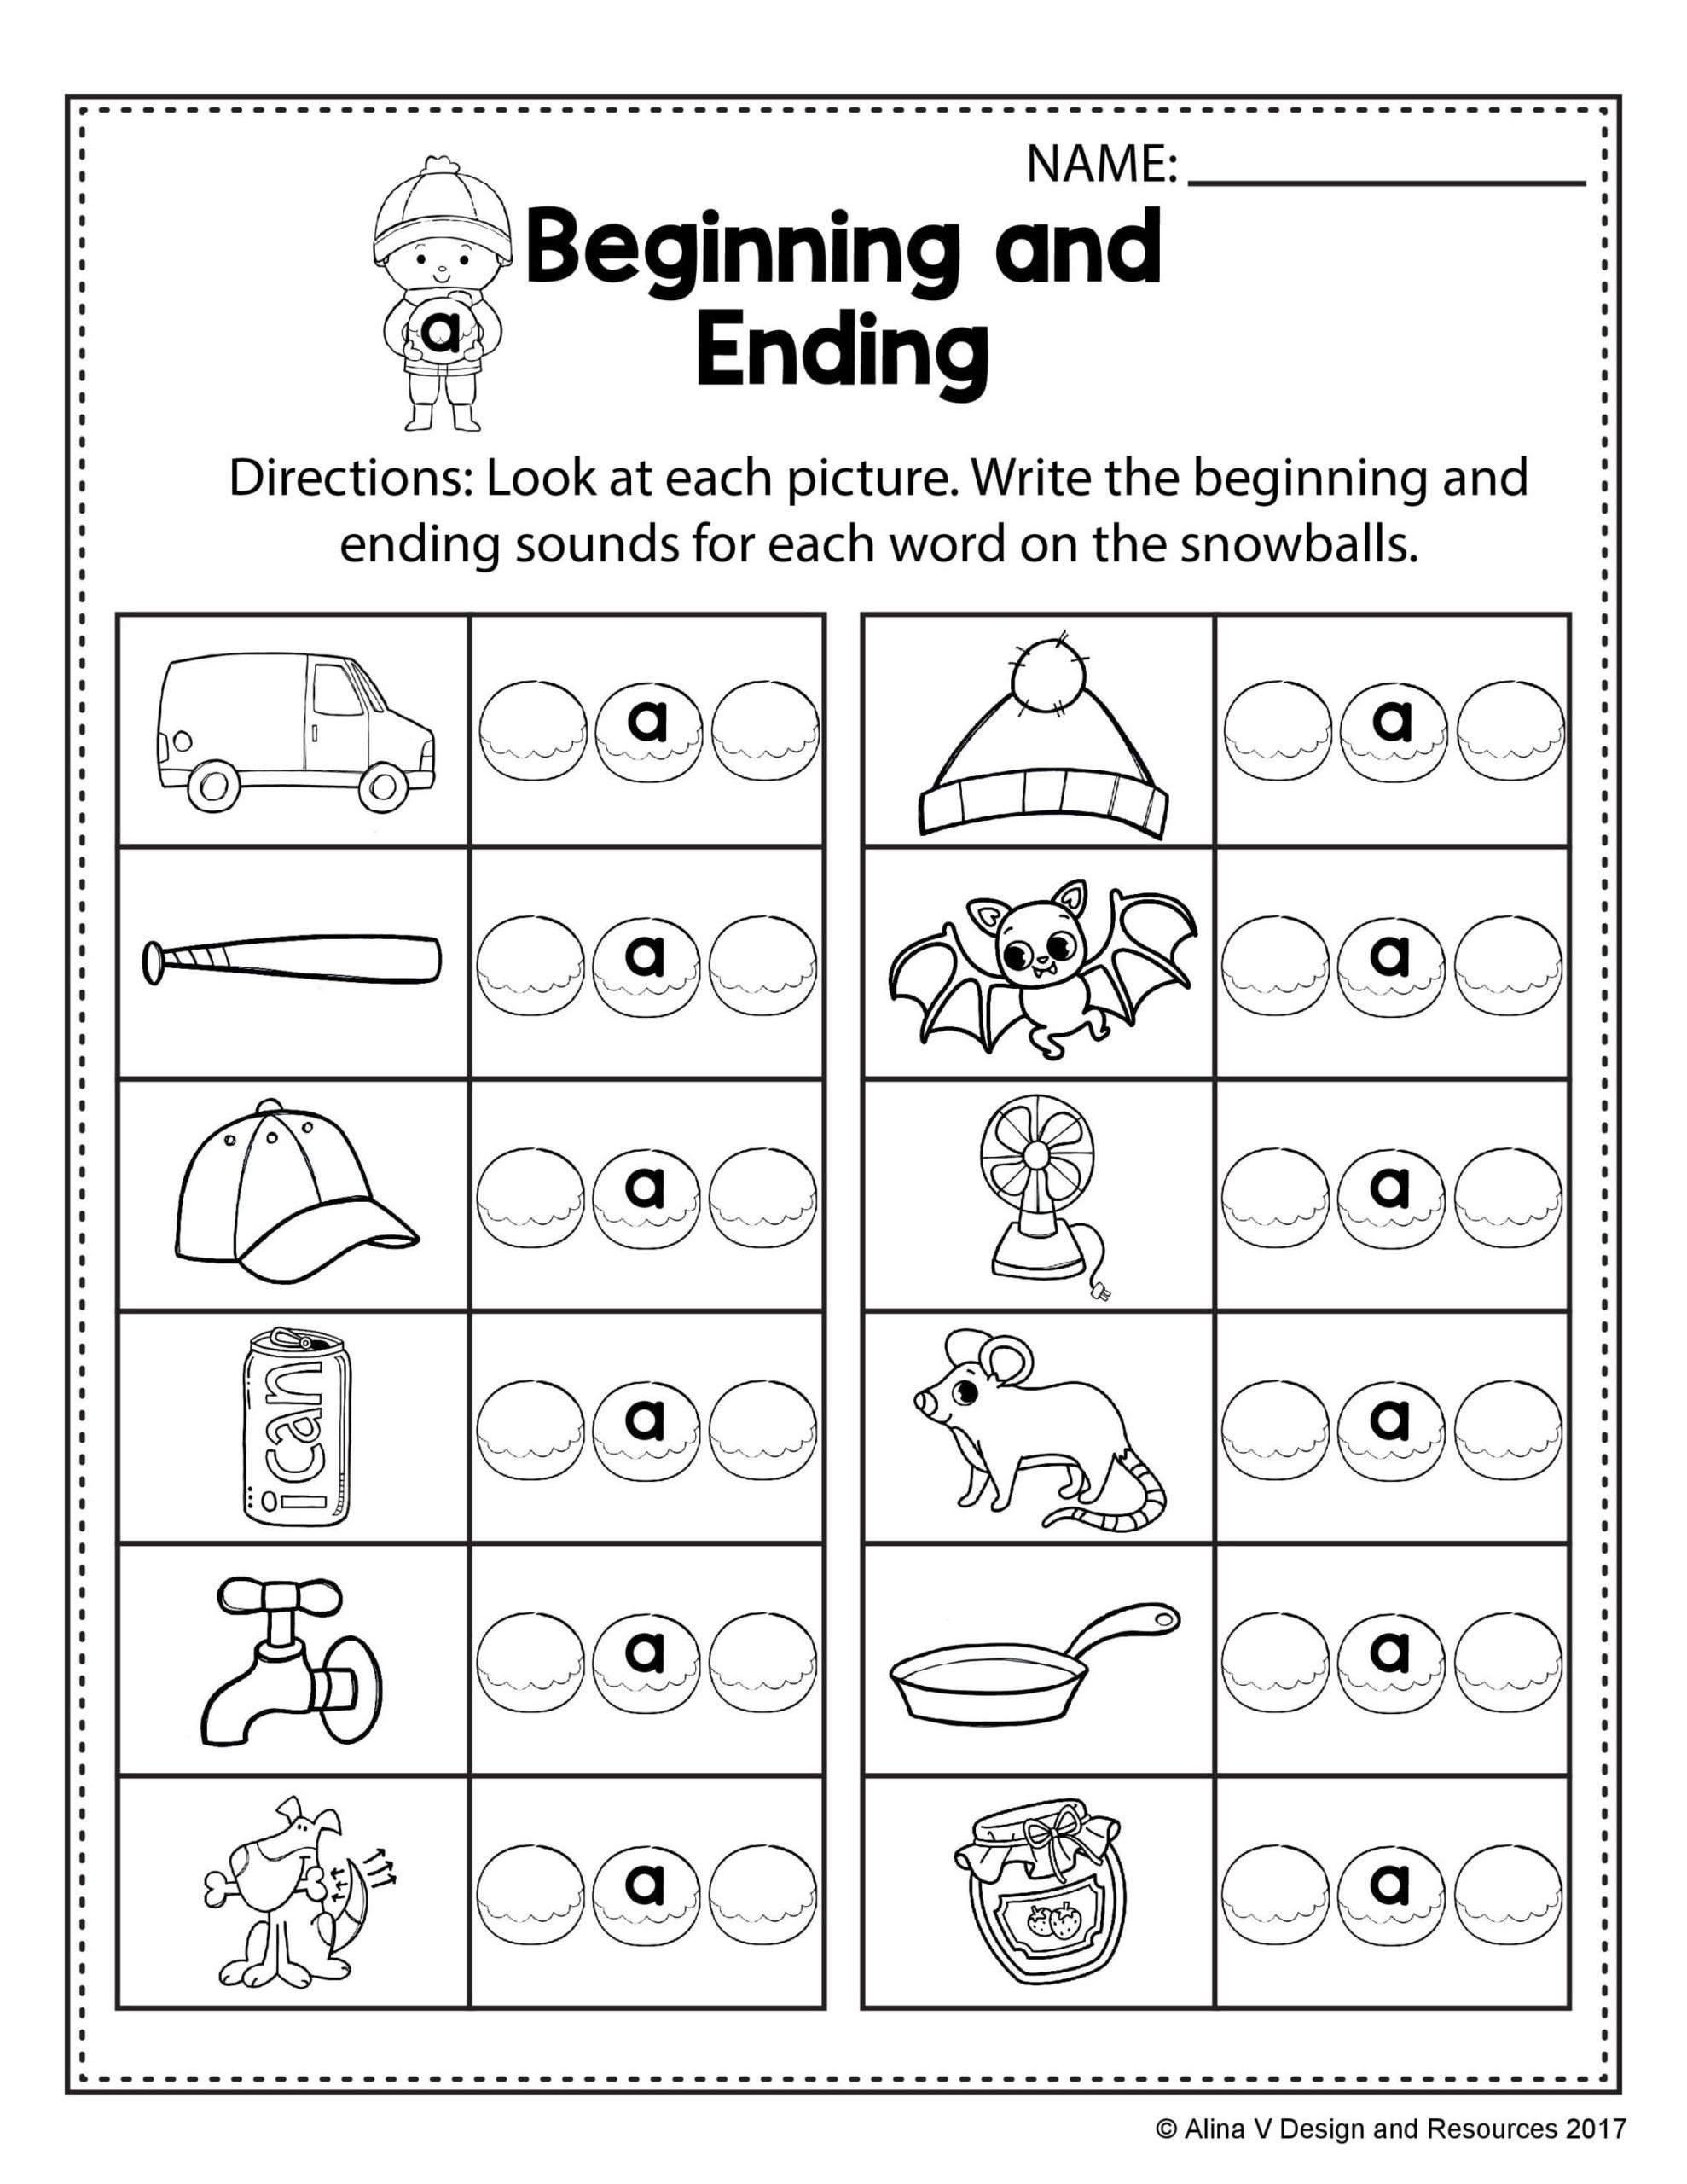 Kindergarten Spelling Worksheets Worksheet Smart Kindergarten Learning songs for Year